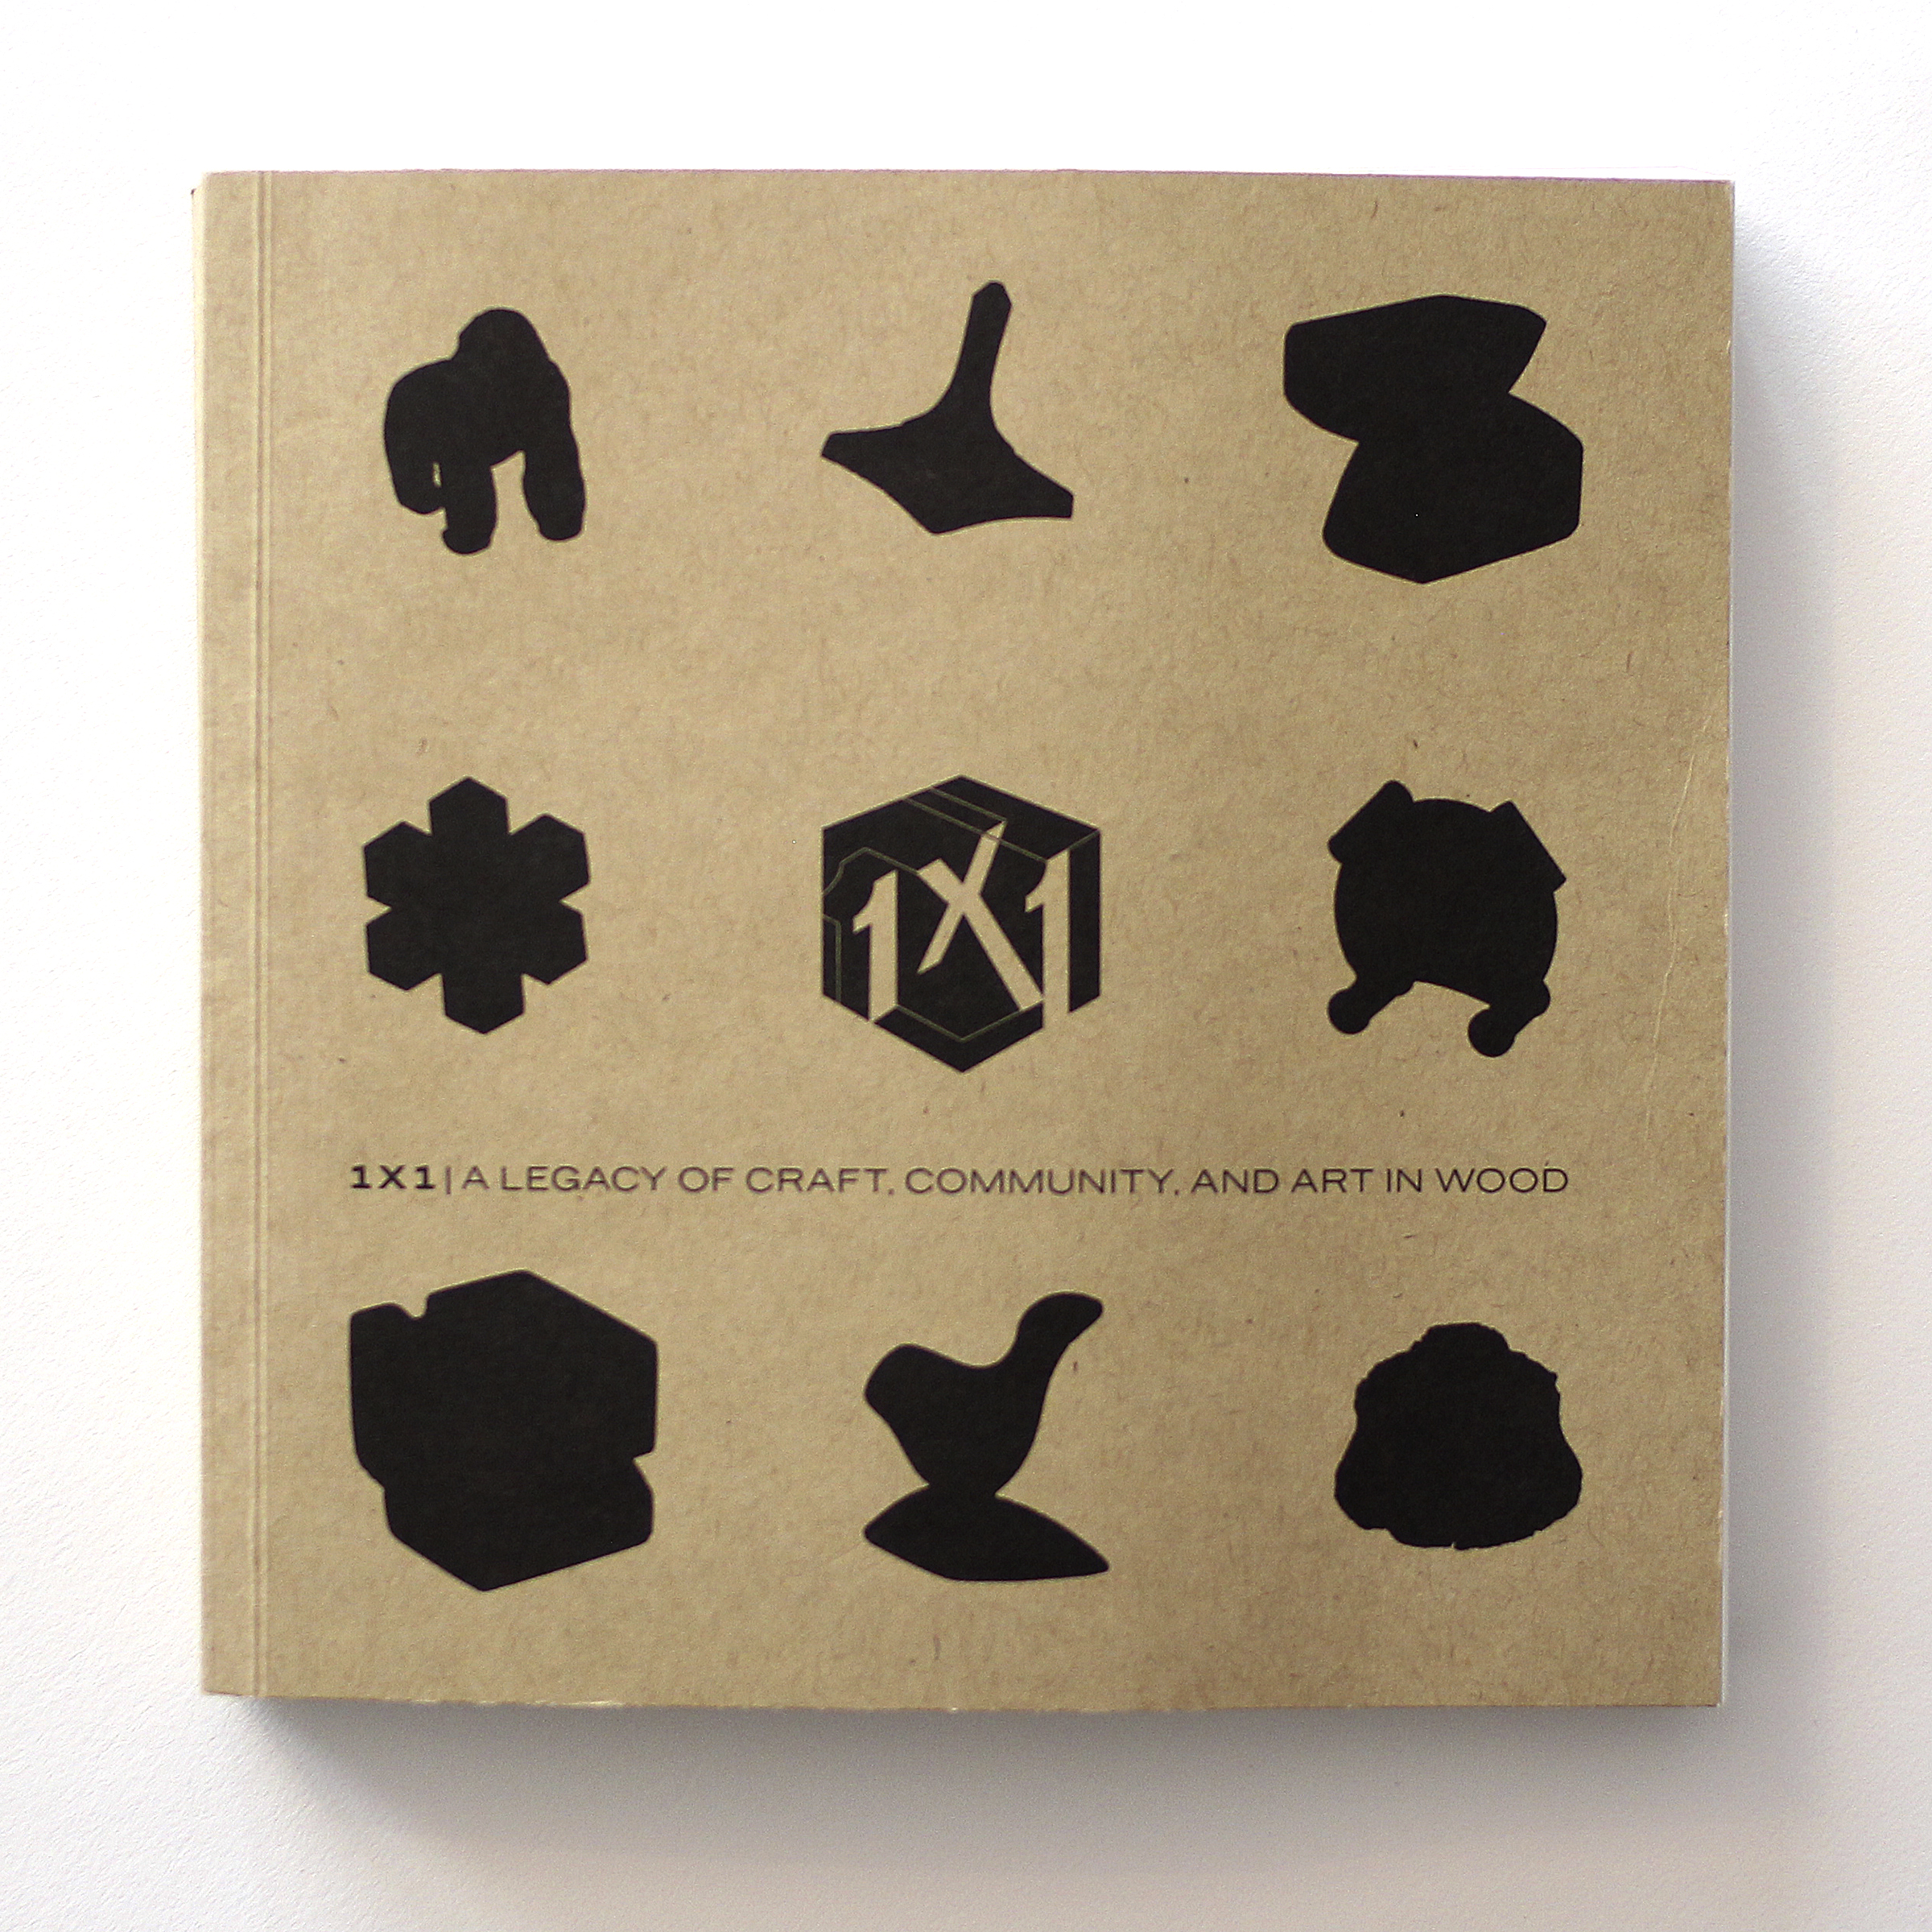 1 x 1: A Legacy of Craft, Community, and Art in Wood